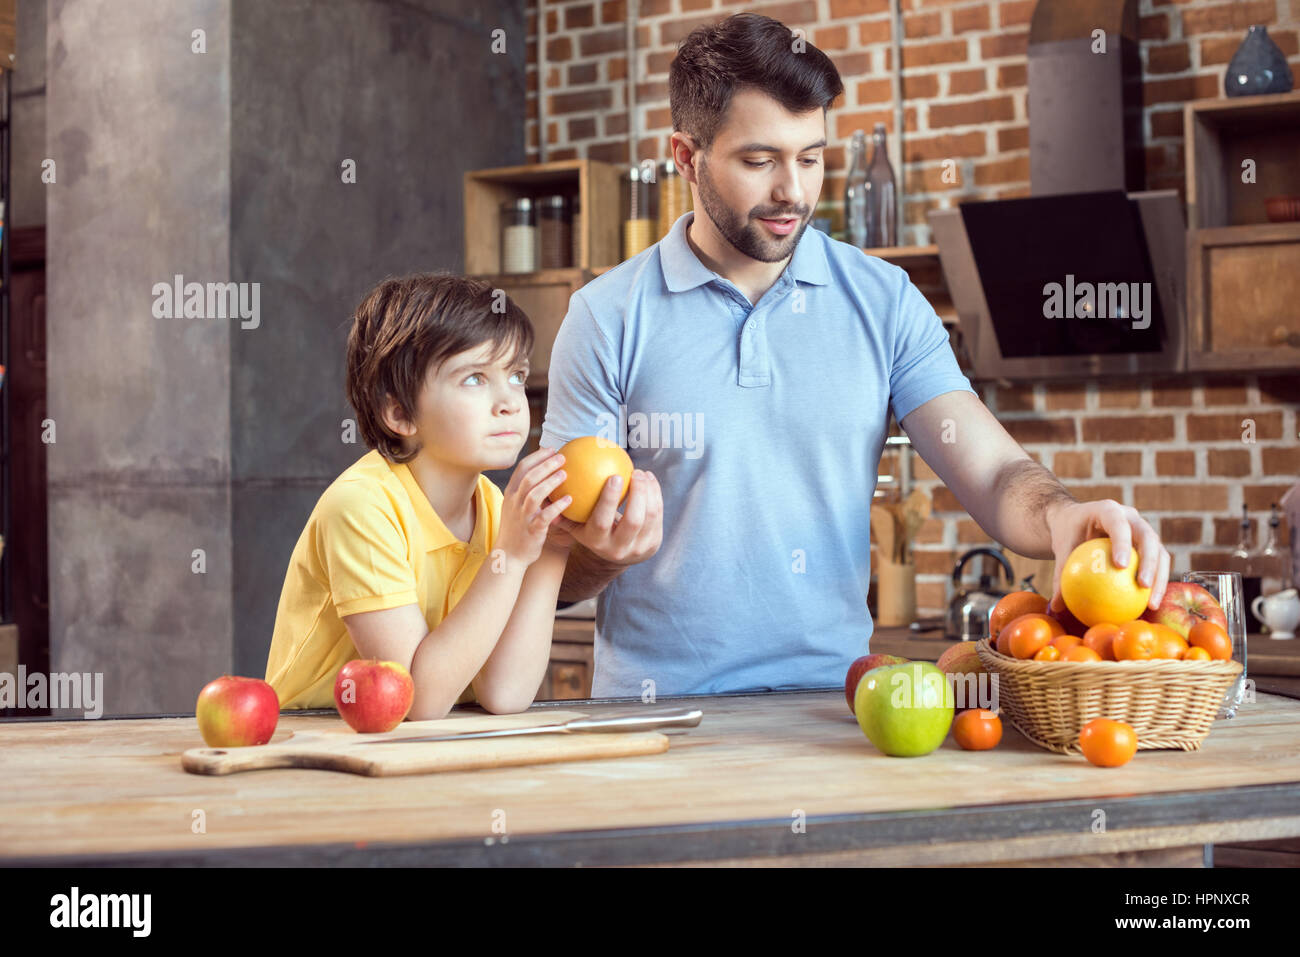 Father and son selecting fruits from basket - Stock Image